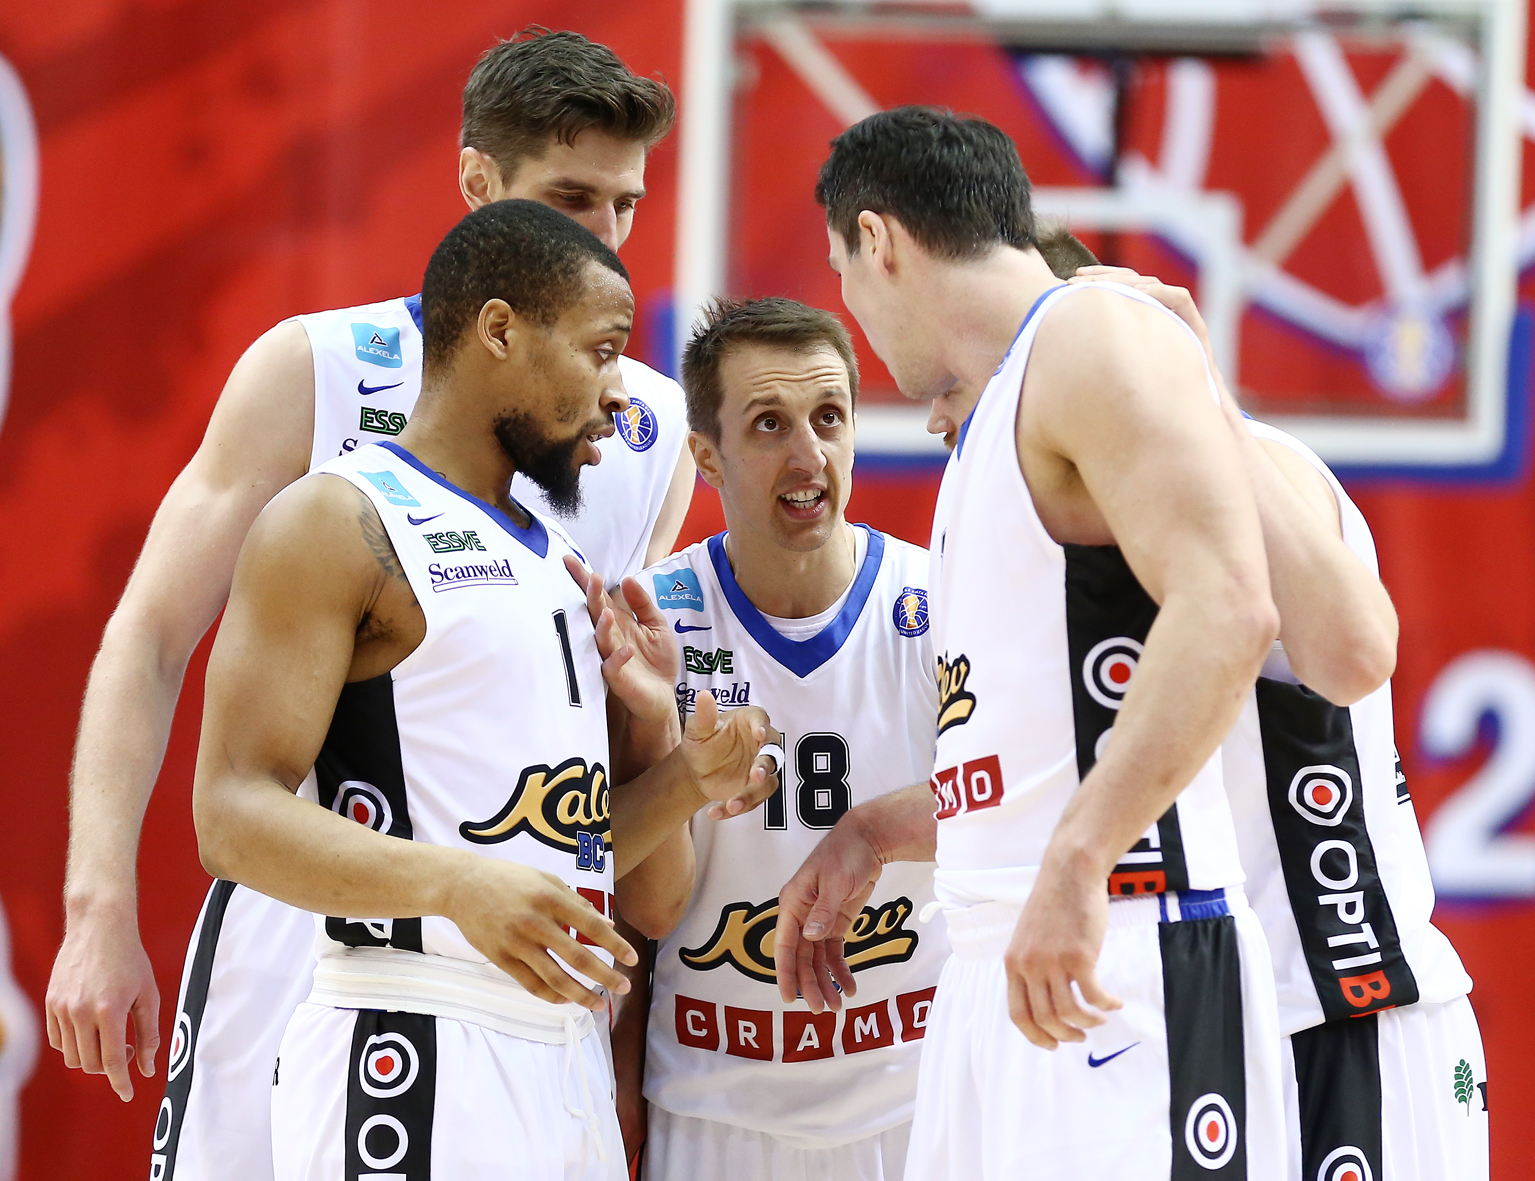 7 Facts About Playoff Hopeful Kalev